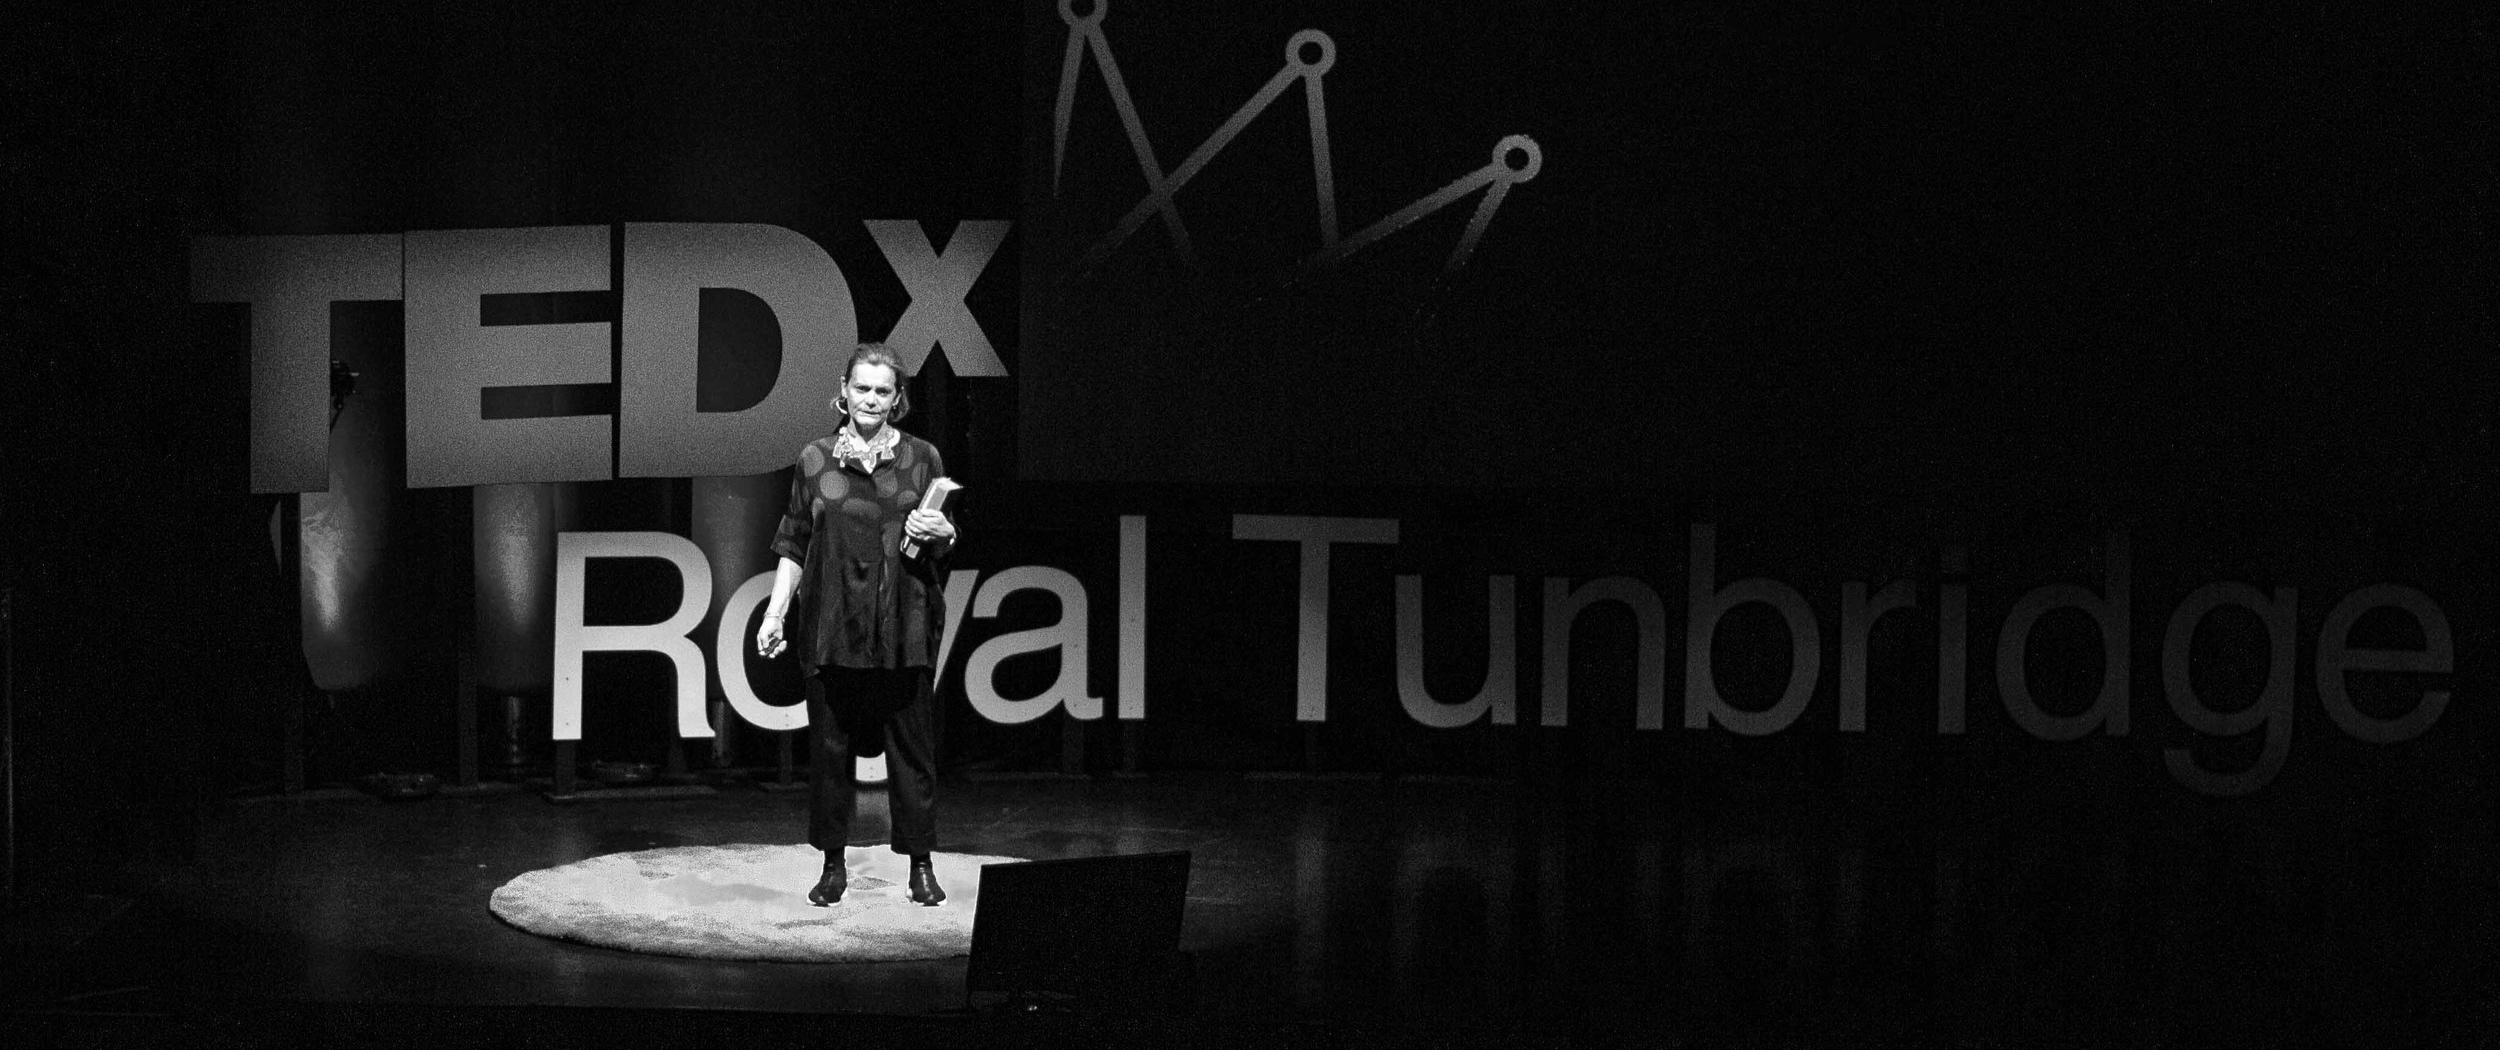 apply-to-speak-at-tedxroyaltunbridgewells.jpg